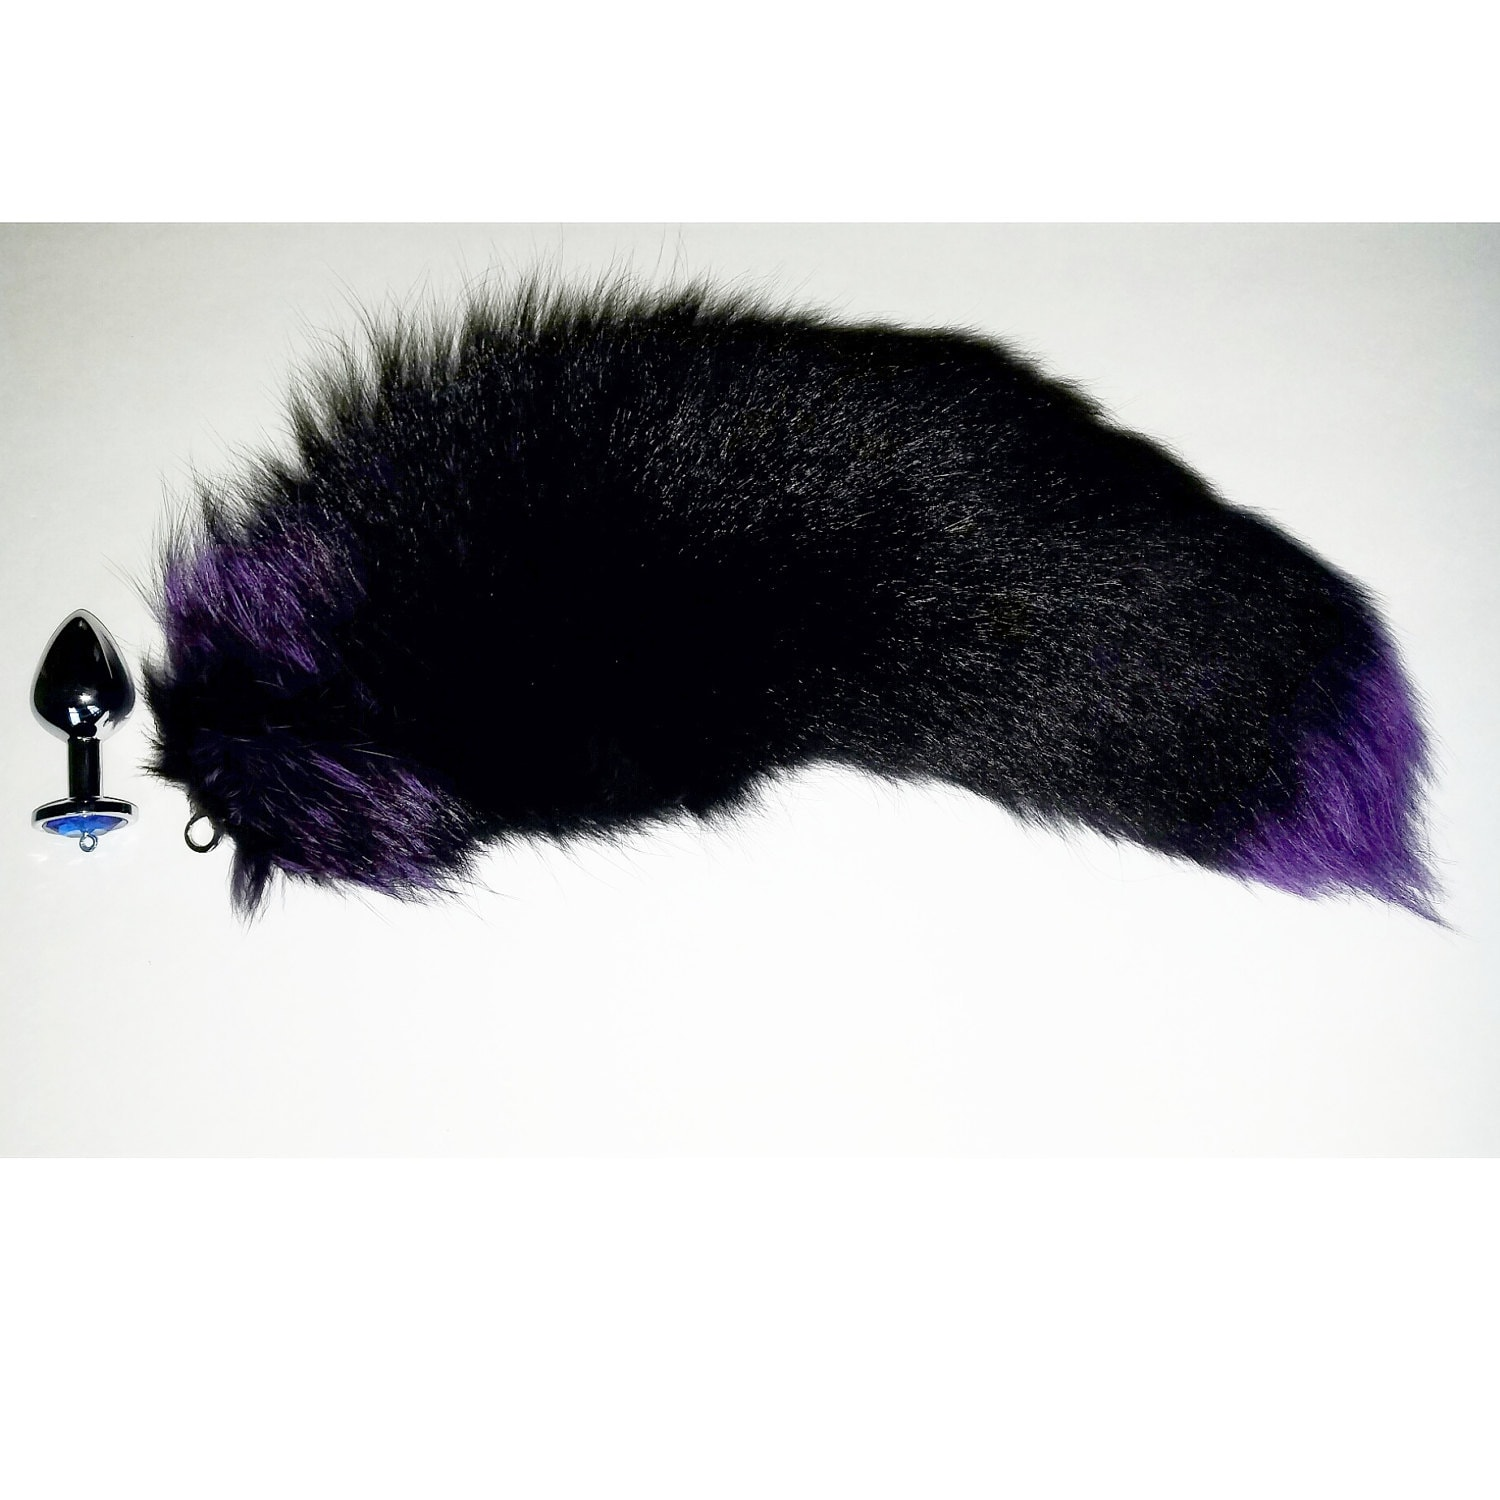 "19-18"" amazing, detachable silver dyed purple fox tail butt plug"